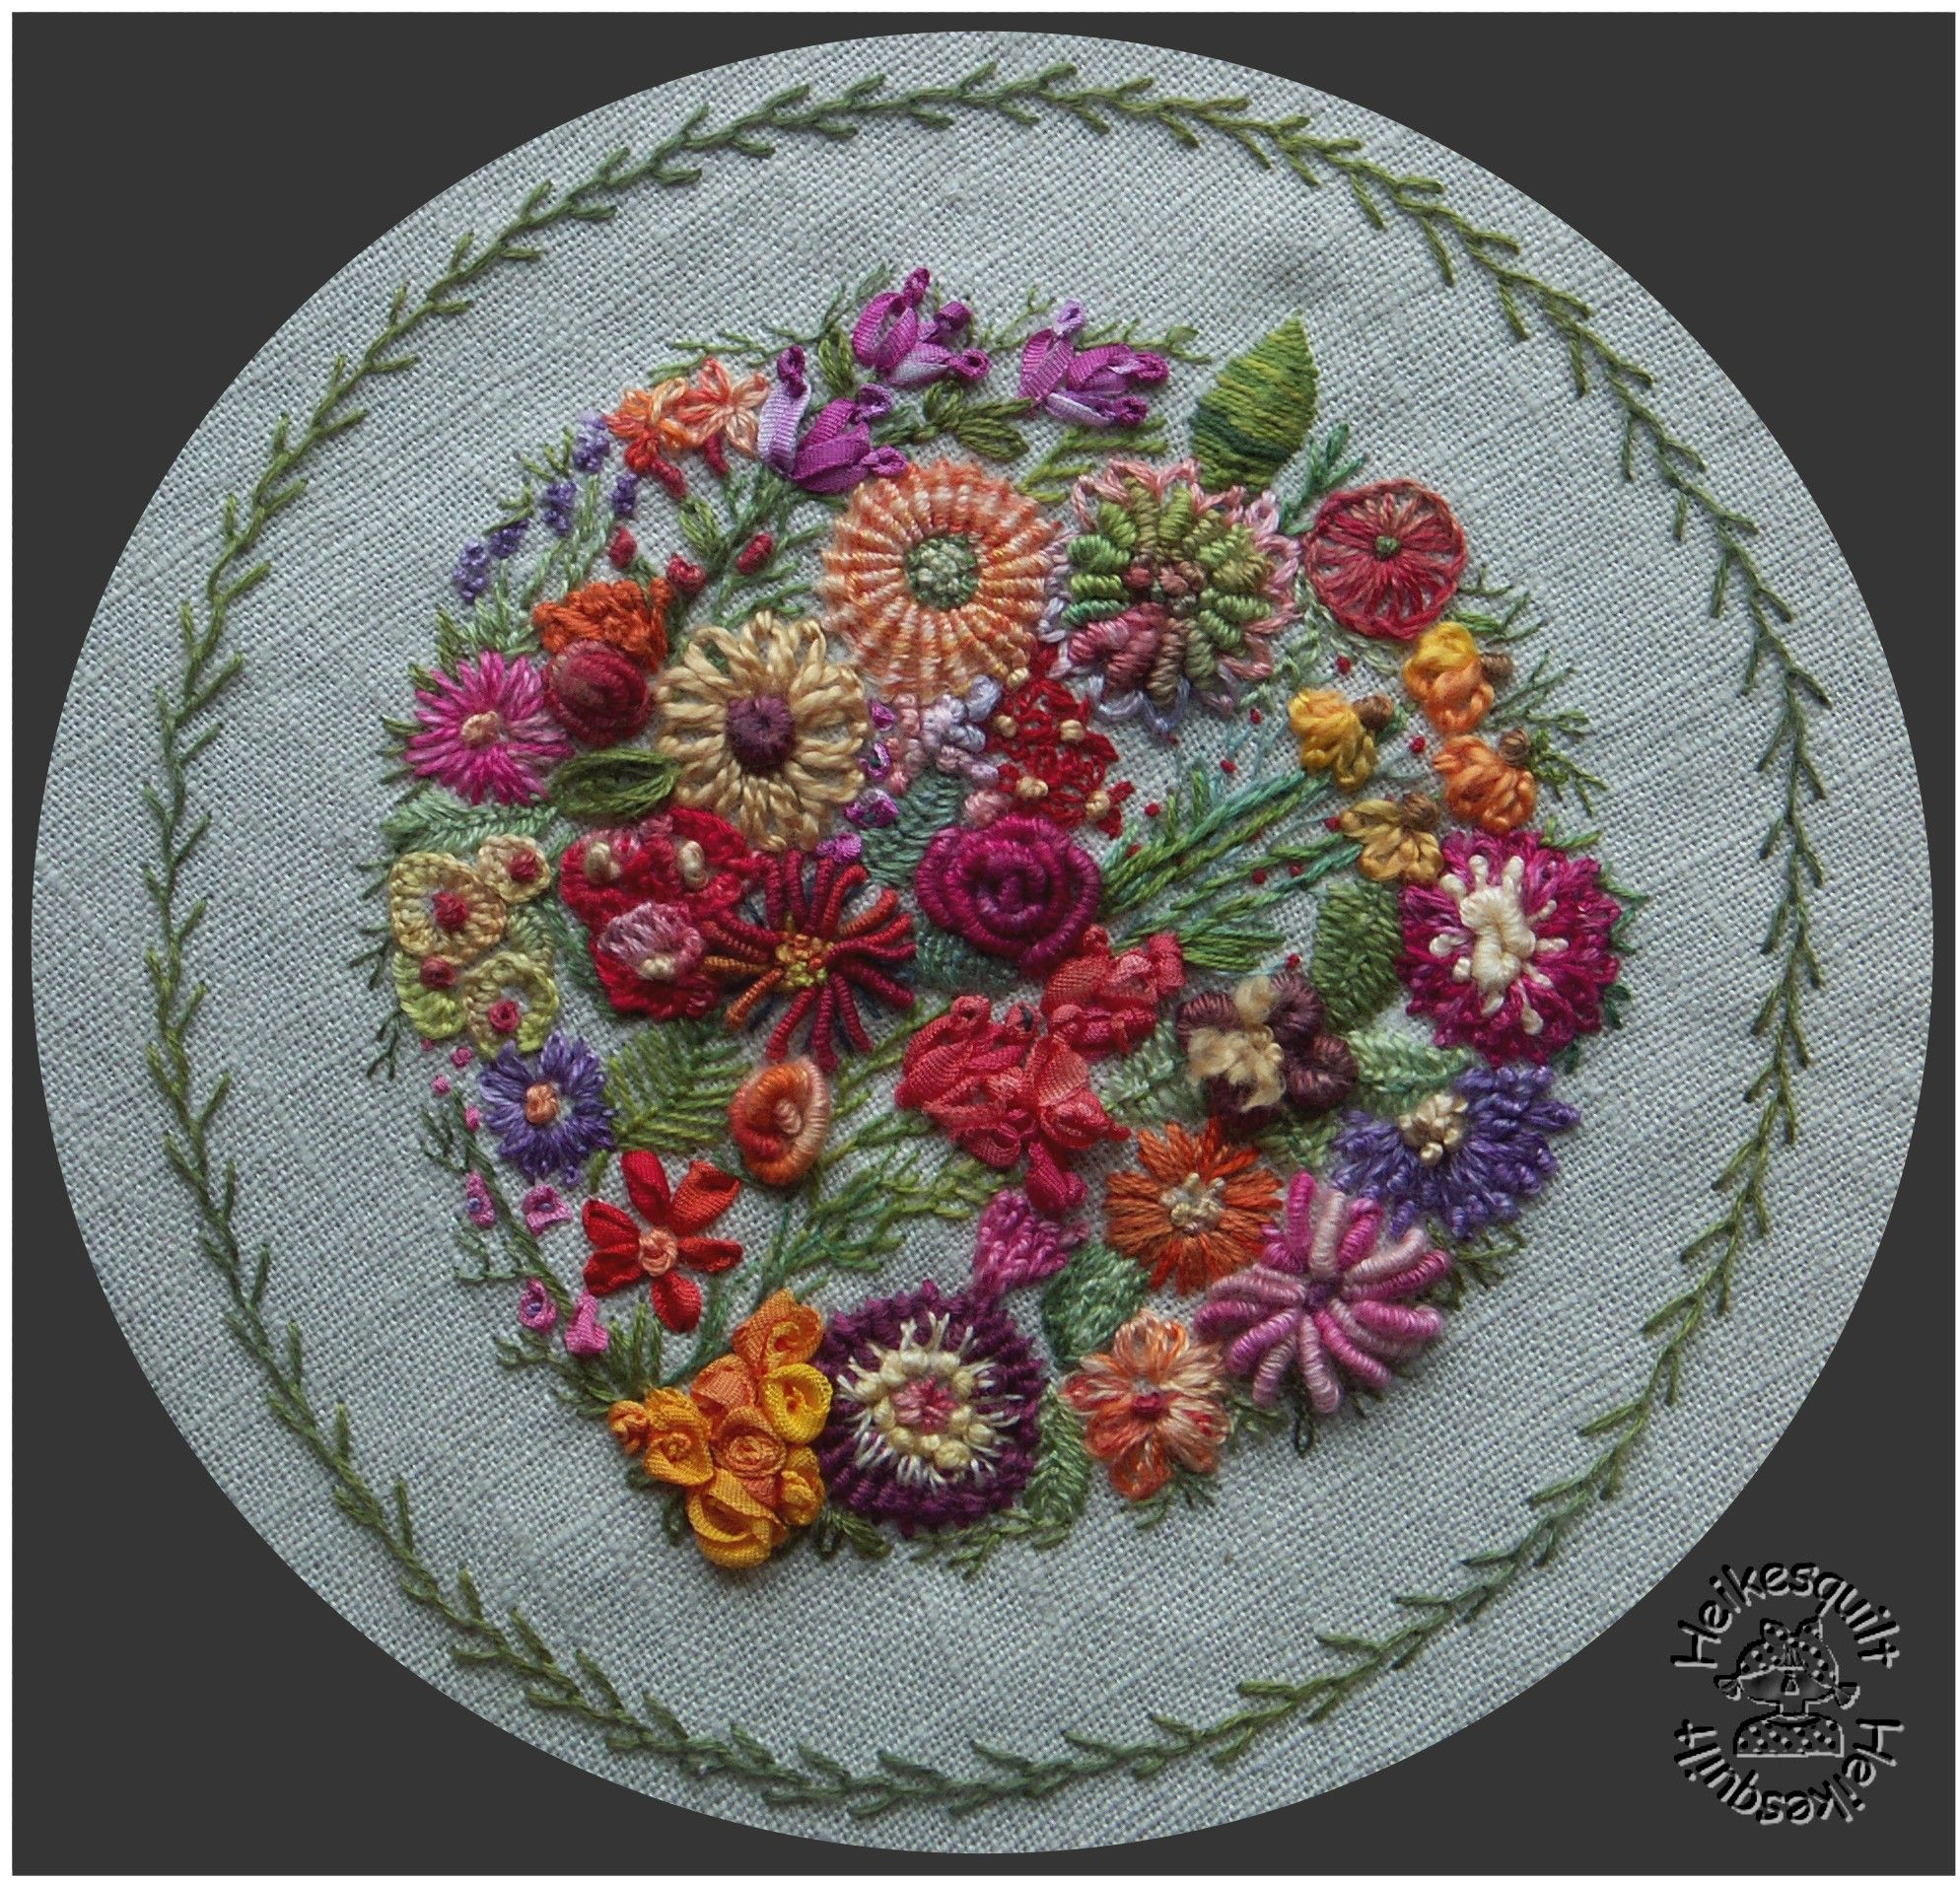 Free hand stitched embroidery designs hand embroidery ideas